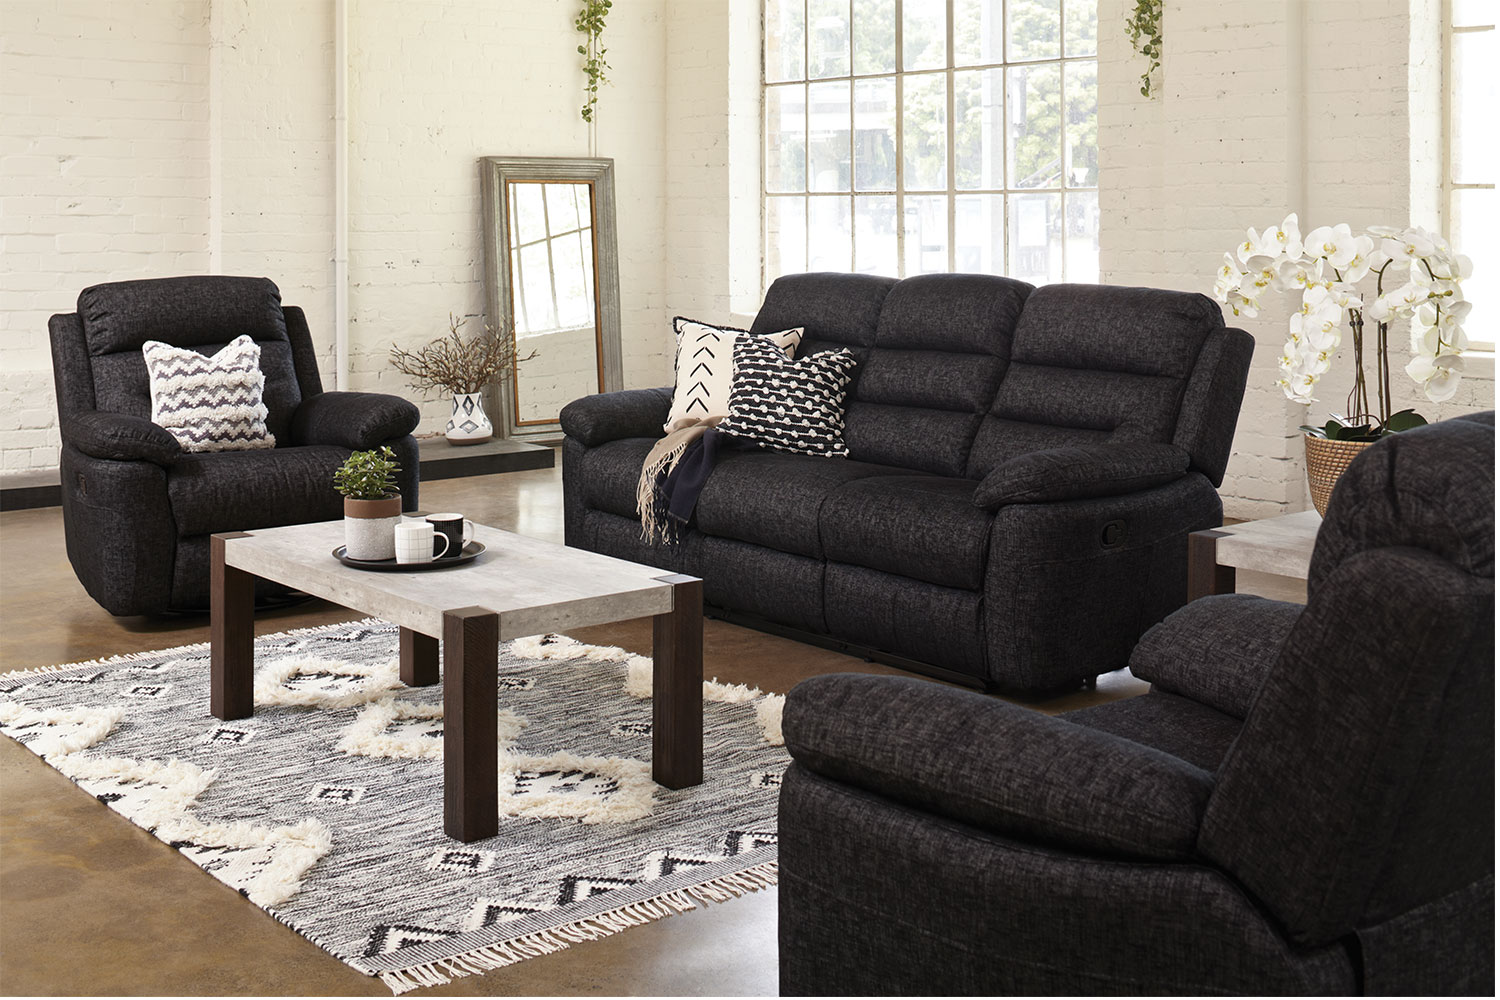 Lounge Suites Maverick 3 Piece Fabric Recliner Lounge Suite